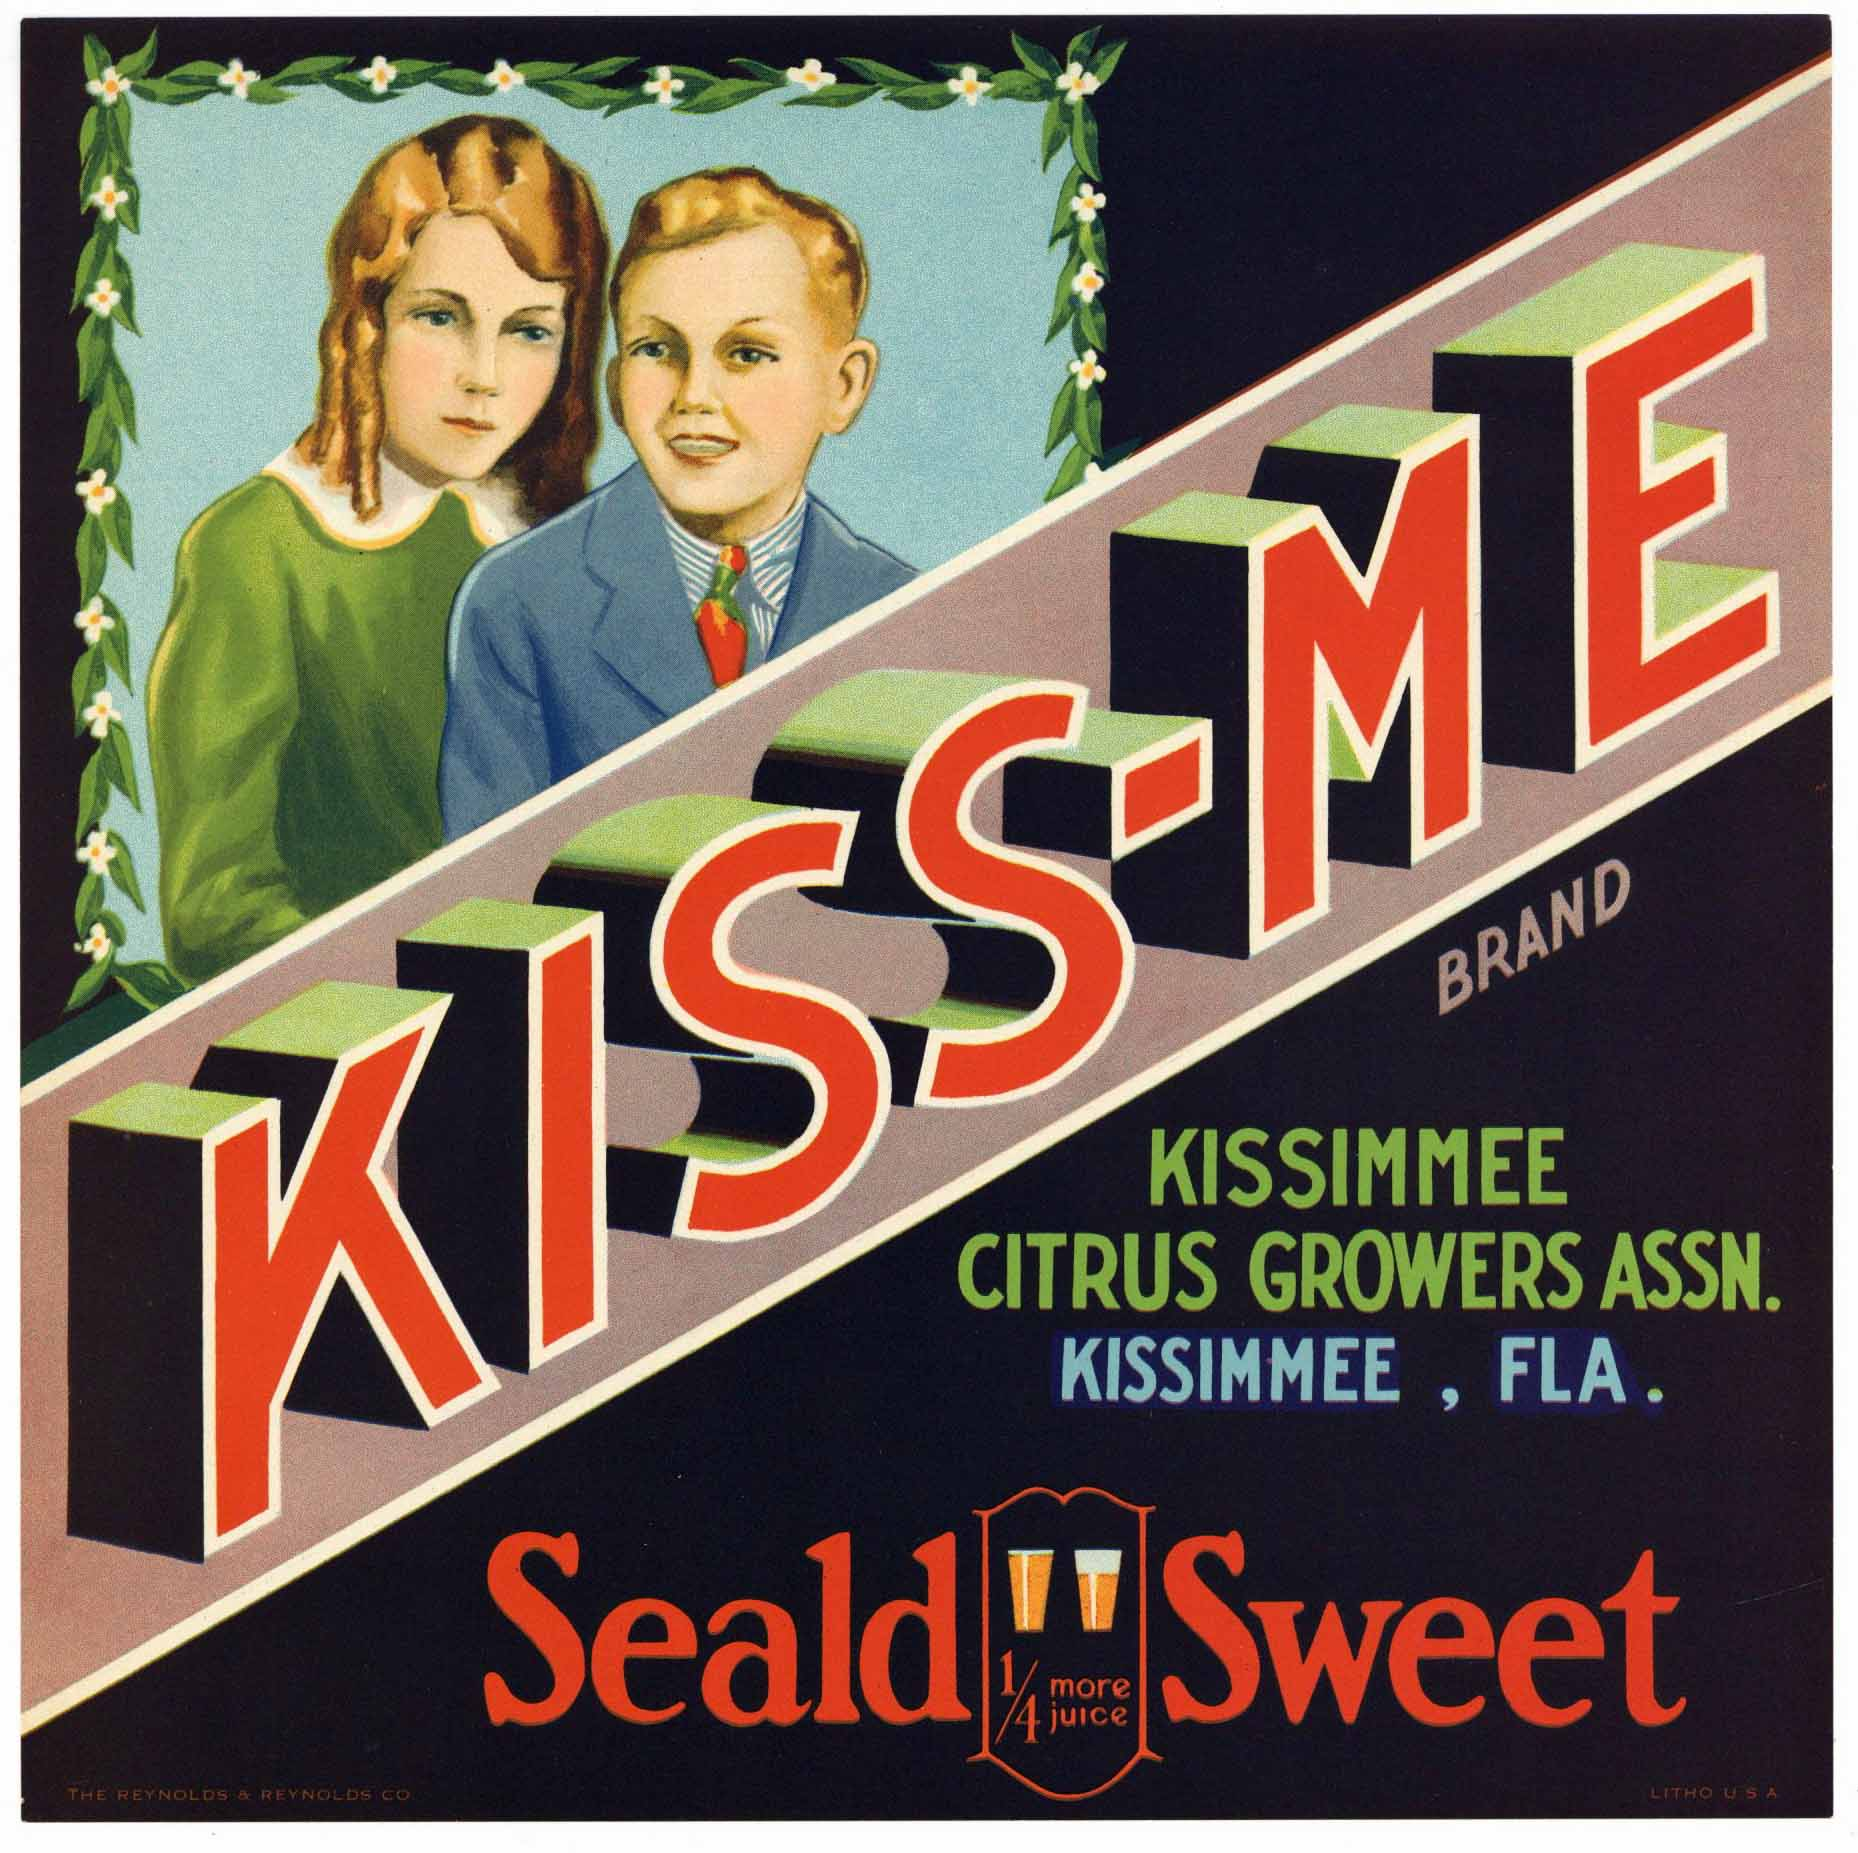 Kiss-Me Brand Vintage Kissimmee Florida Citrus Crate Label, L